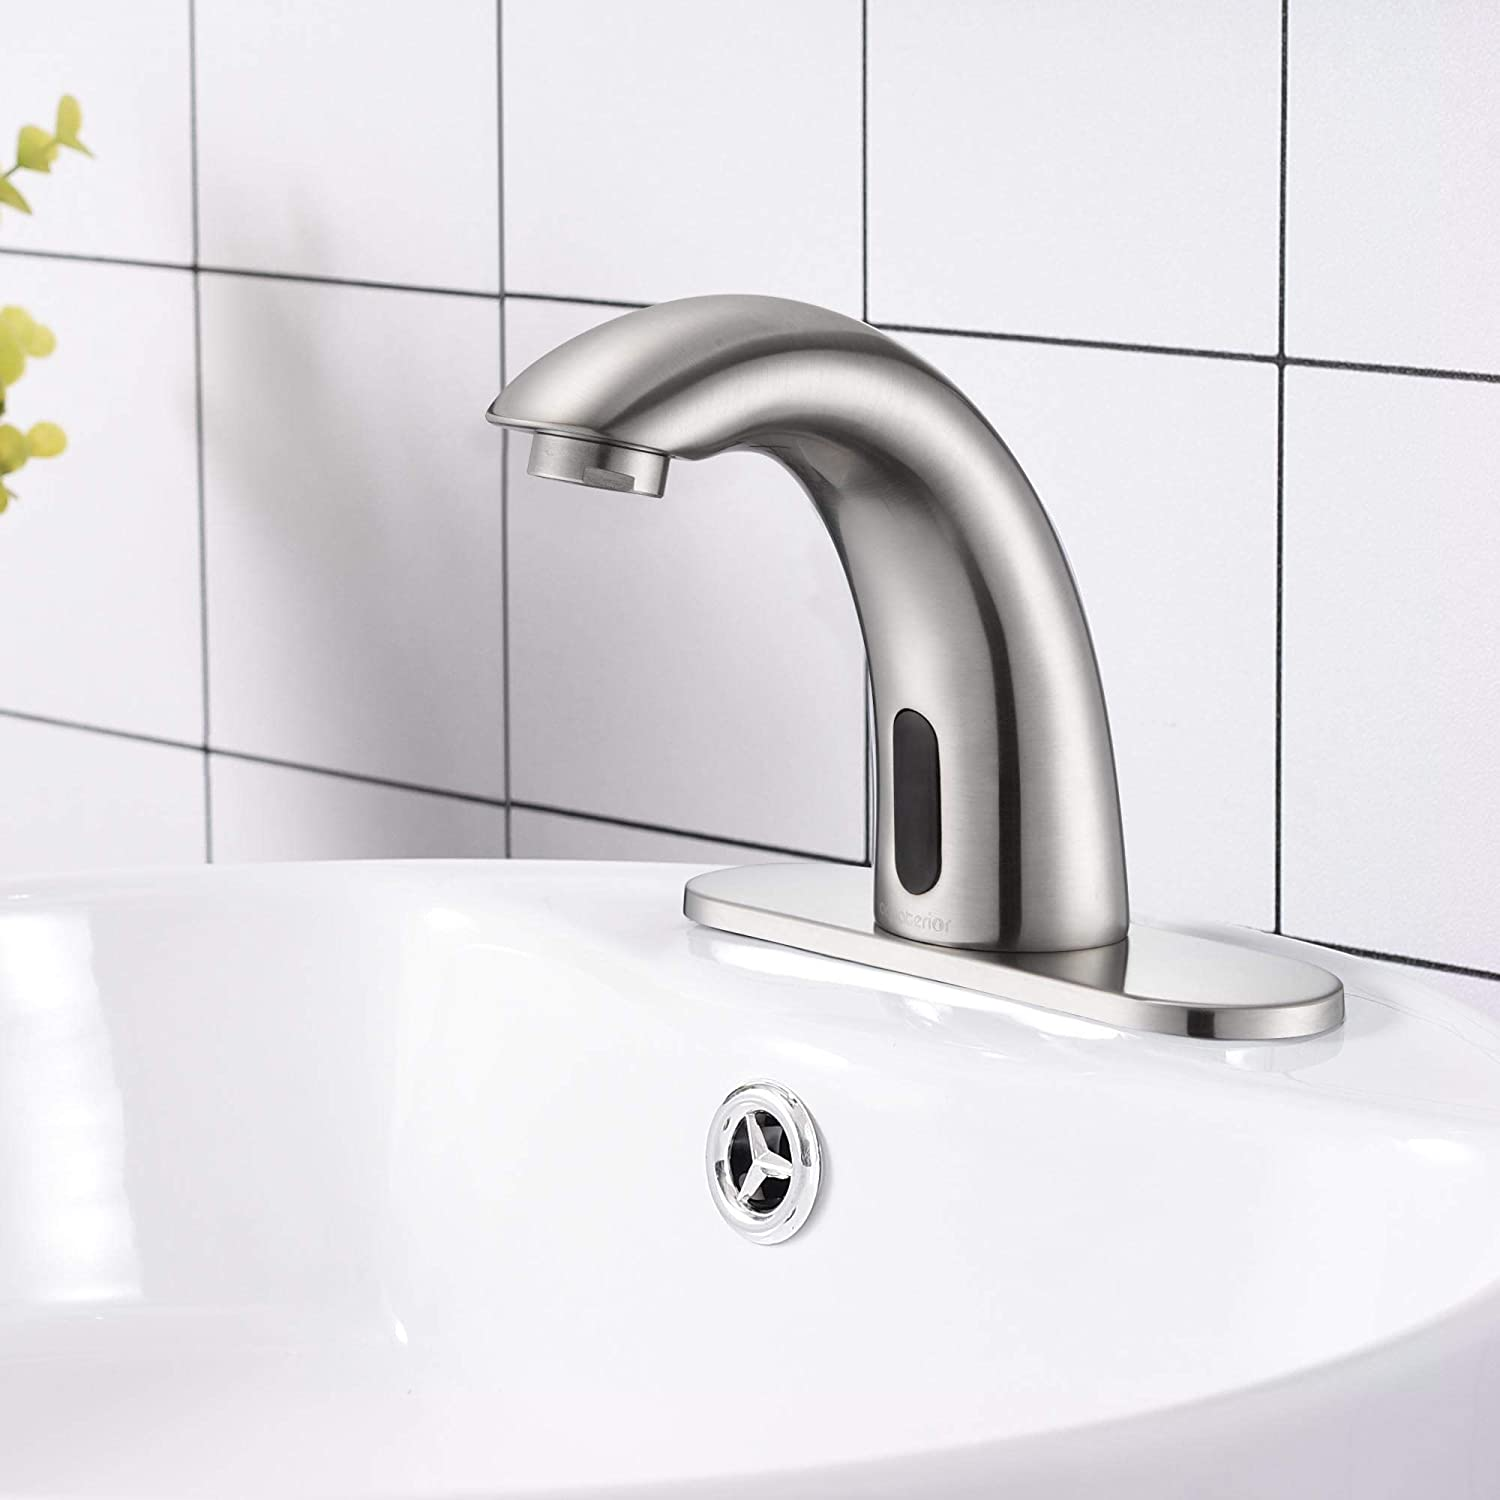 YeStarry Commercial Automatic Sensor Touchless Faucet Sink Washington Mall 5